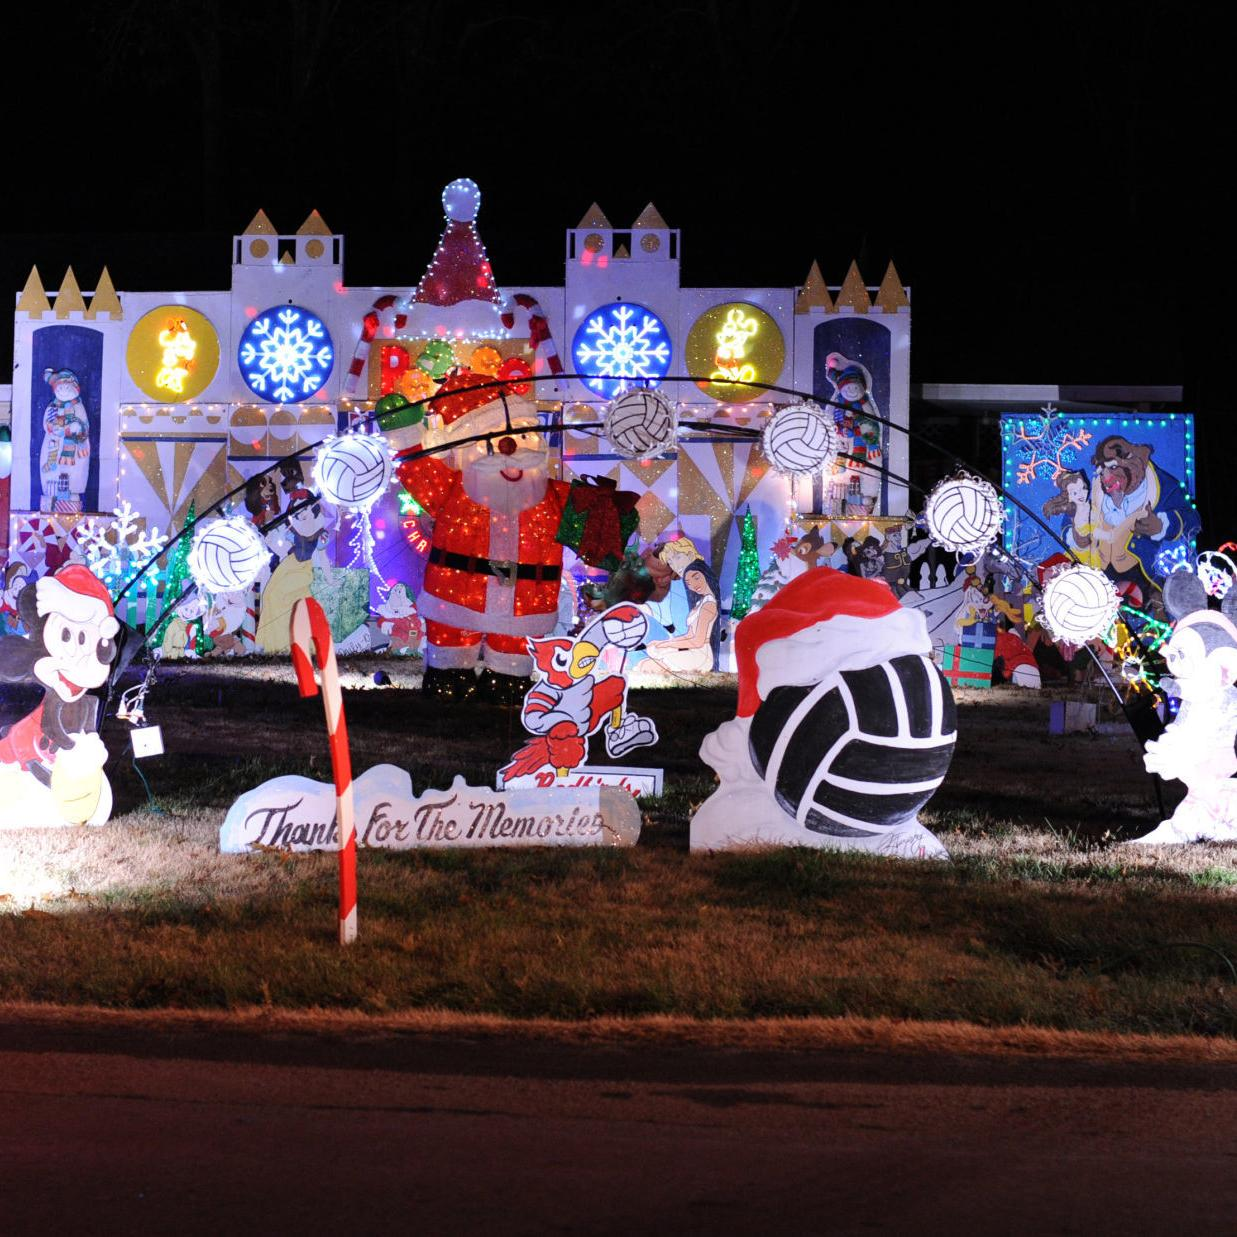 The Great Christmas Light Fight 2019.Candy Cane Lane To Be Featured On Great Christmas Light